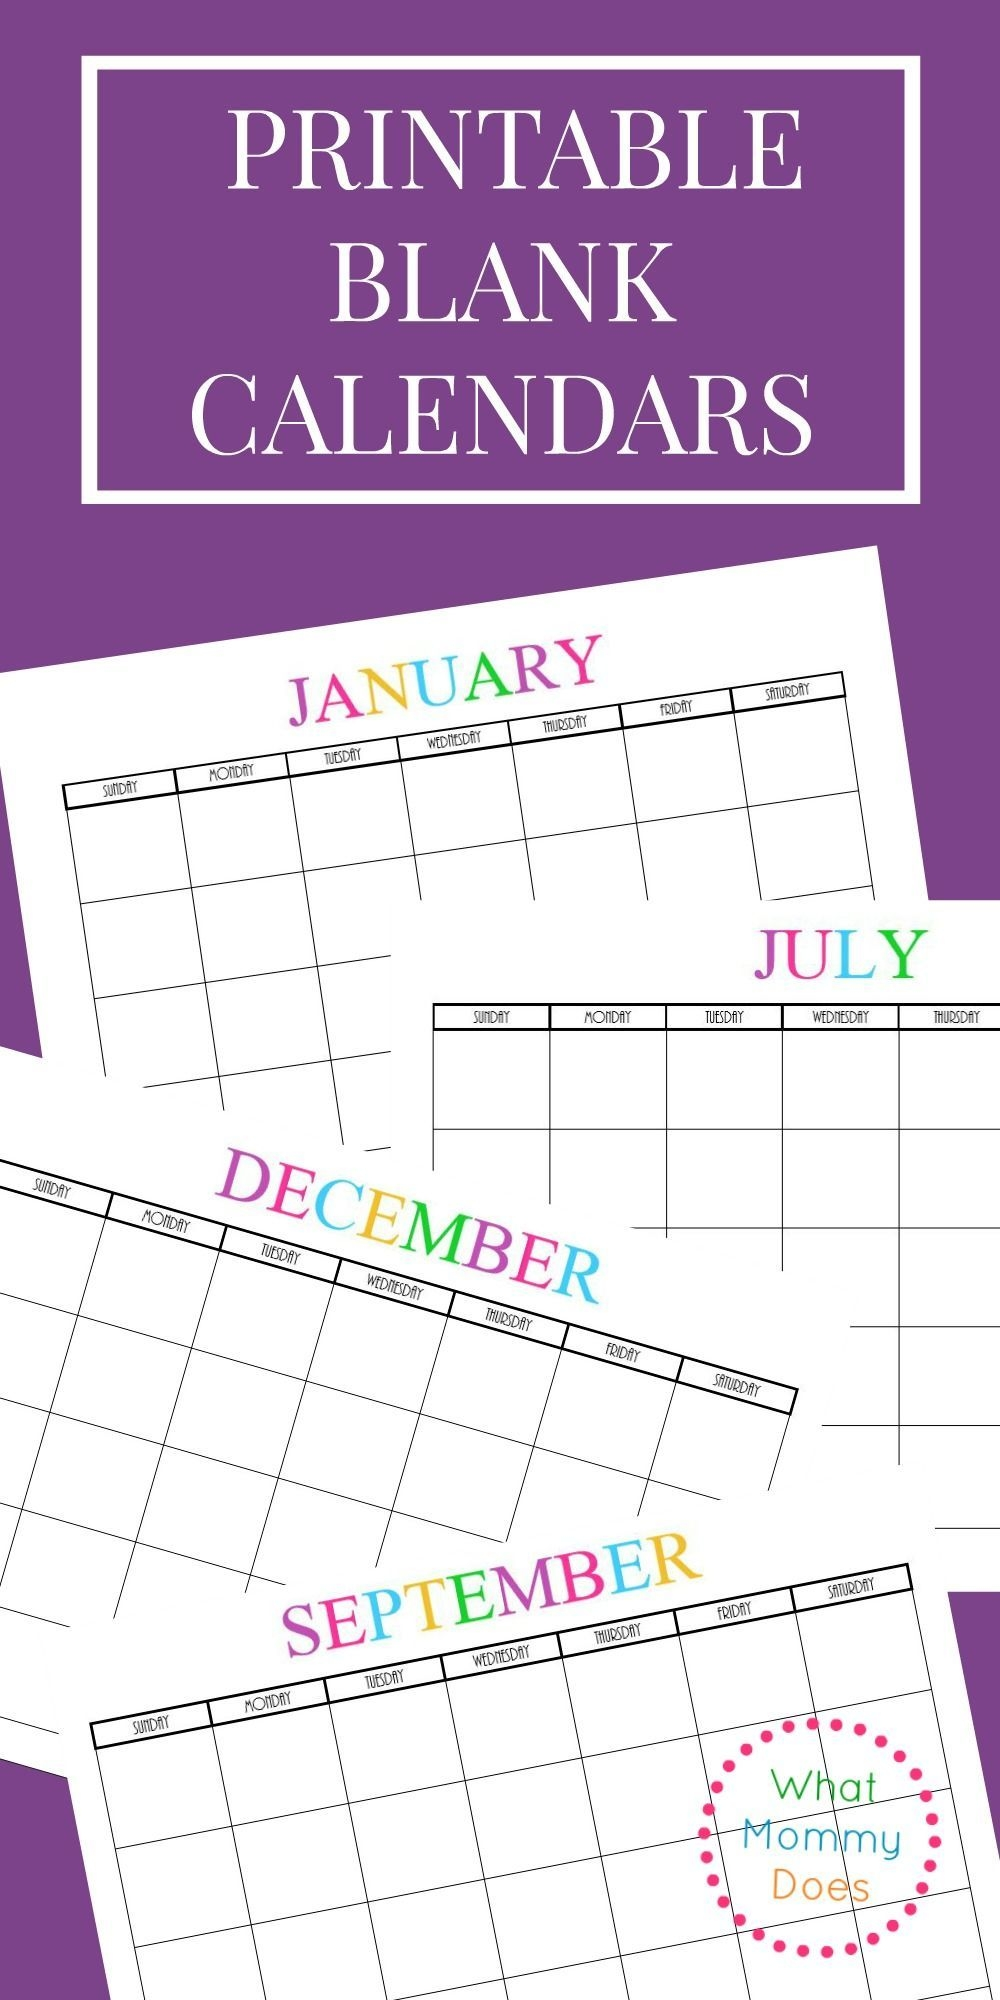 Free Printable Blank Monthly Calendars – 2020, 2021, 2022